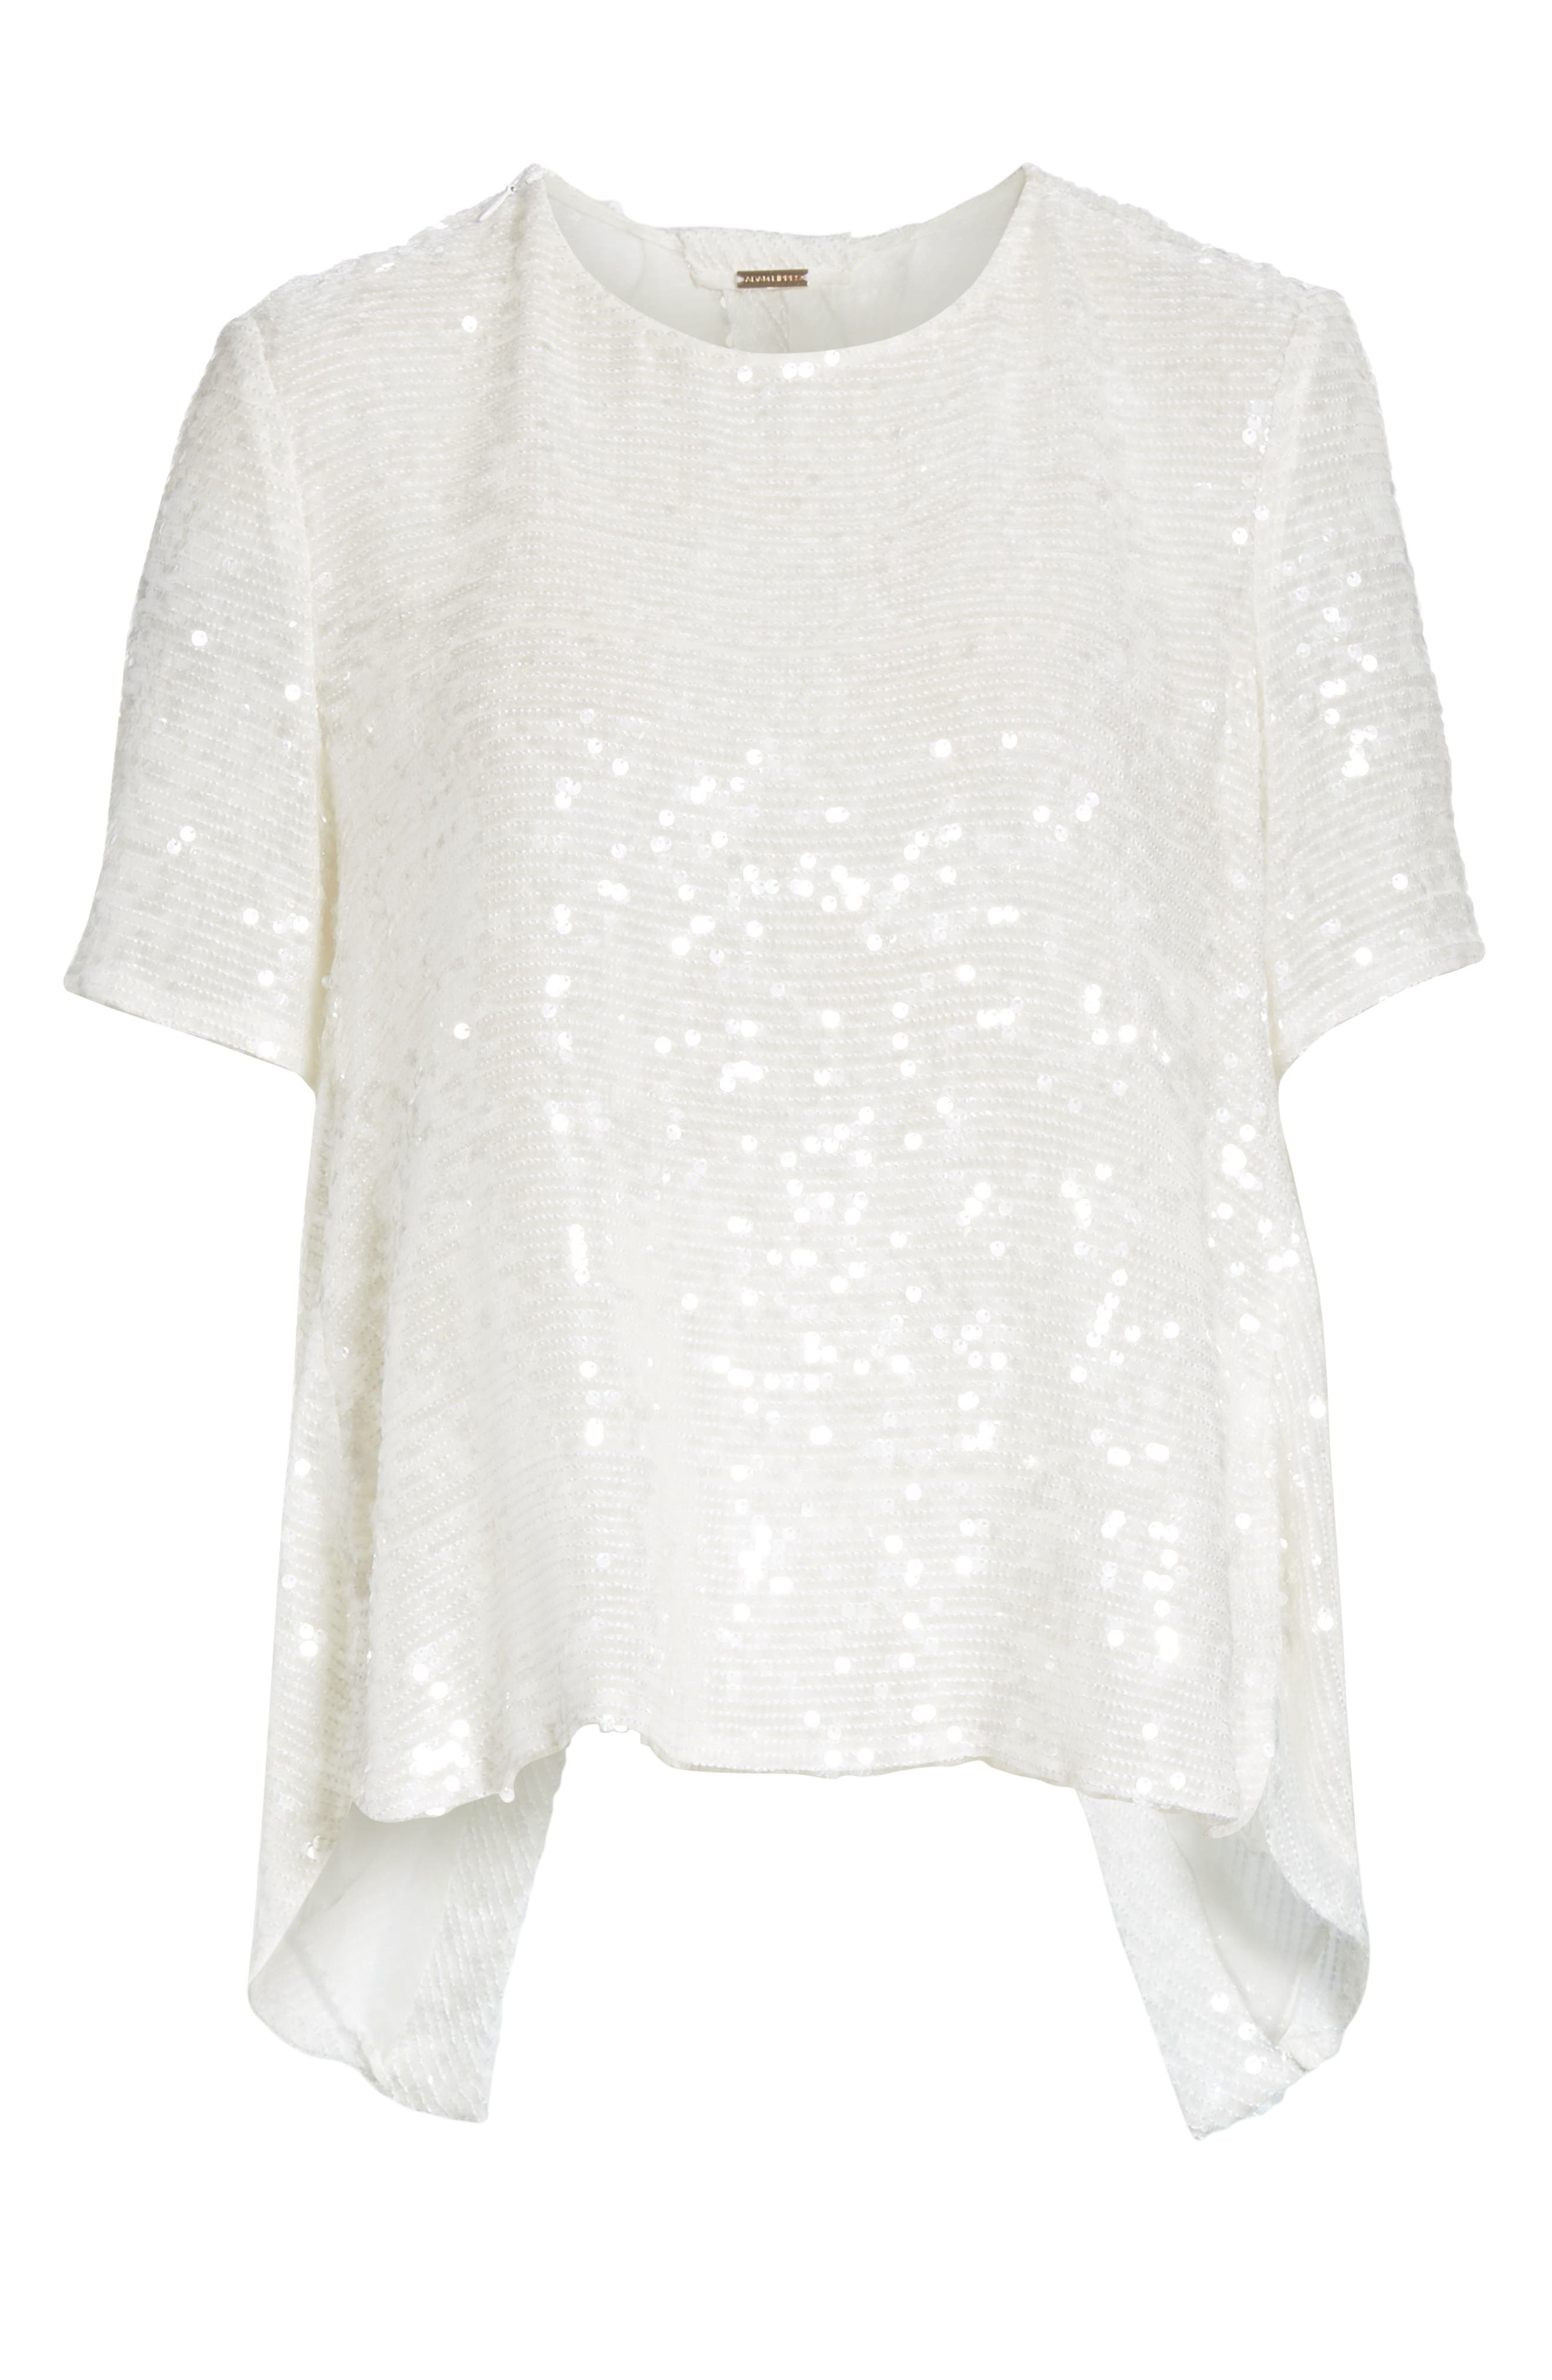 ADAM LIPPES,                             Open Back Sequin Embroidered Blouse,                             Alternate thumbnail 6, color,                             906